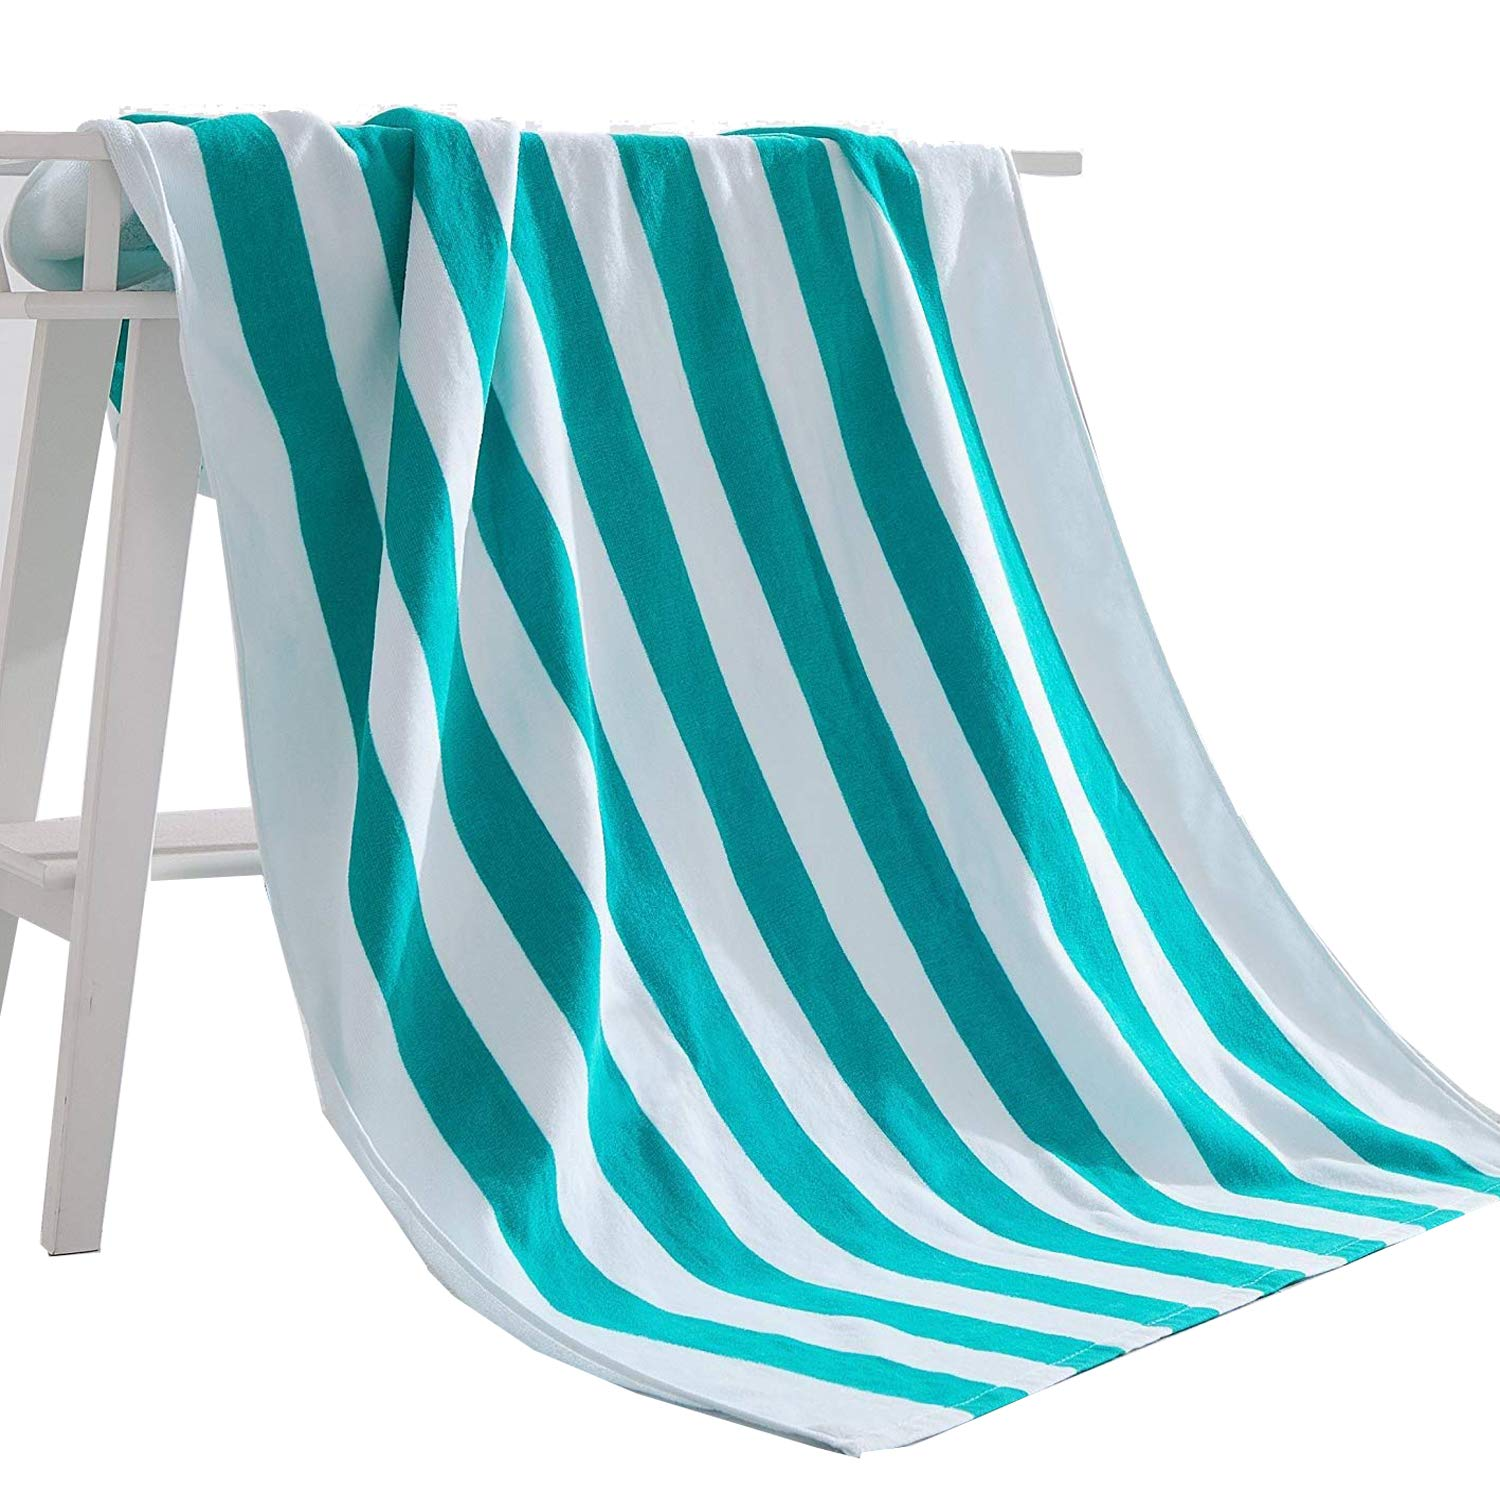 Exclusivo Mezcla 100% Cotton Cabana Striped Beach Towel Caribbean Blue and White (30'' x 60'')-Soft, Quick Dry, Lightweight, Absorbent, and Plush